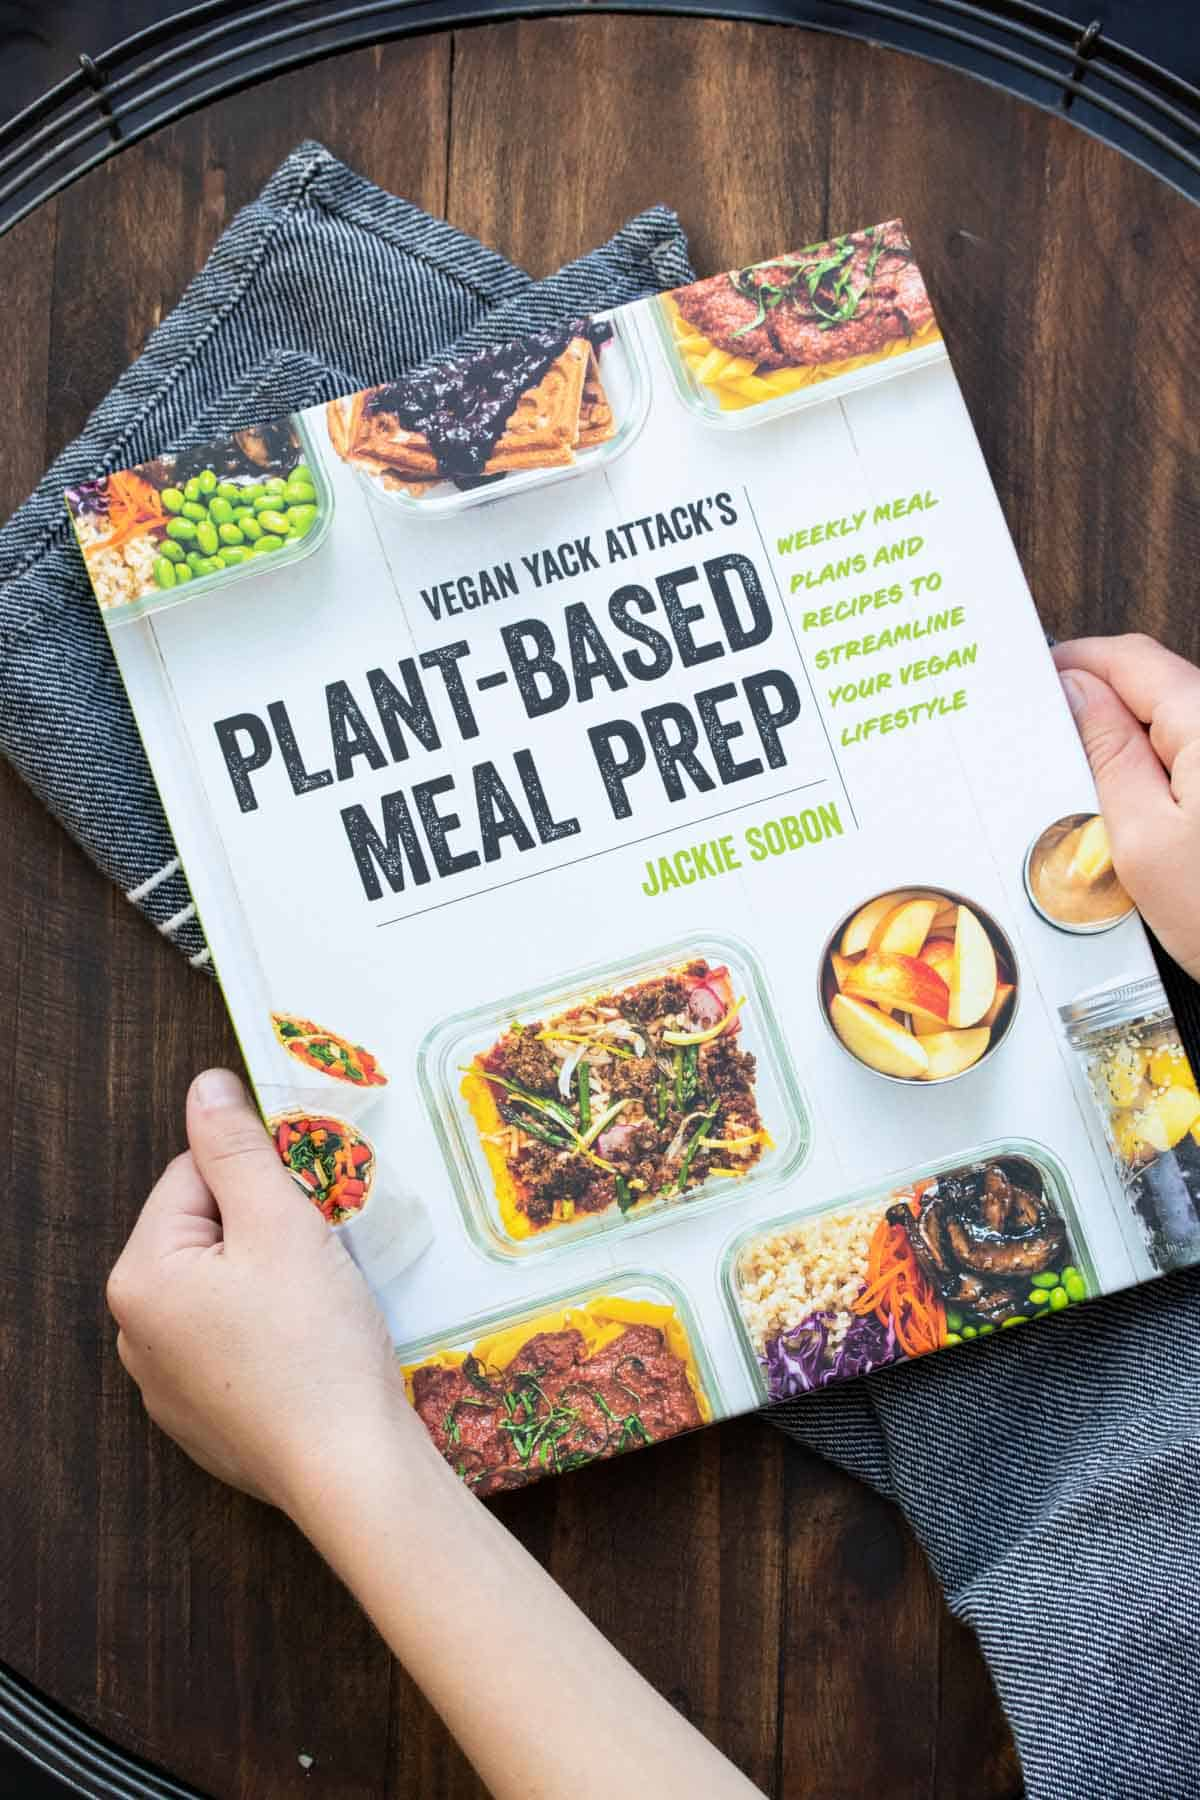 Hands holding a meal prepping cookbook with containers of food on the cover